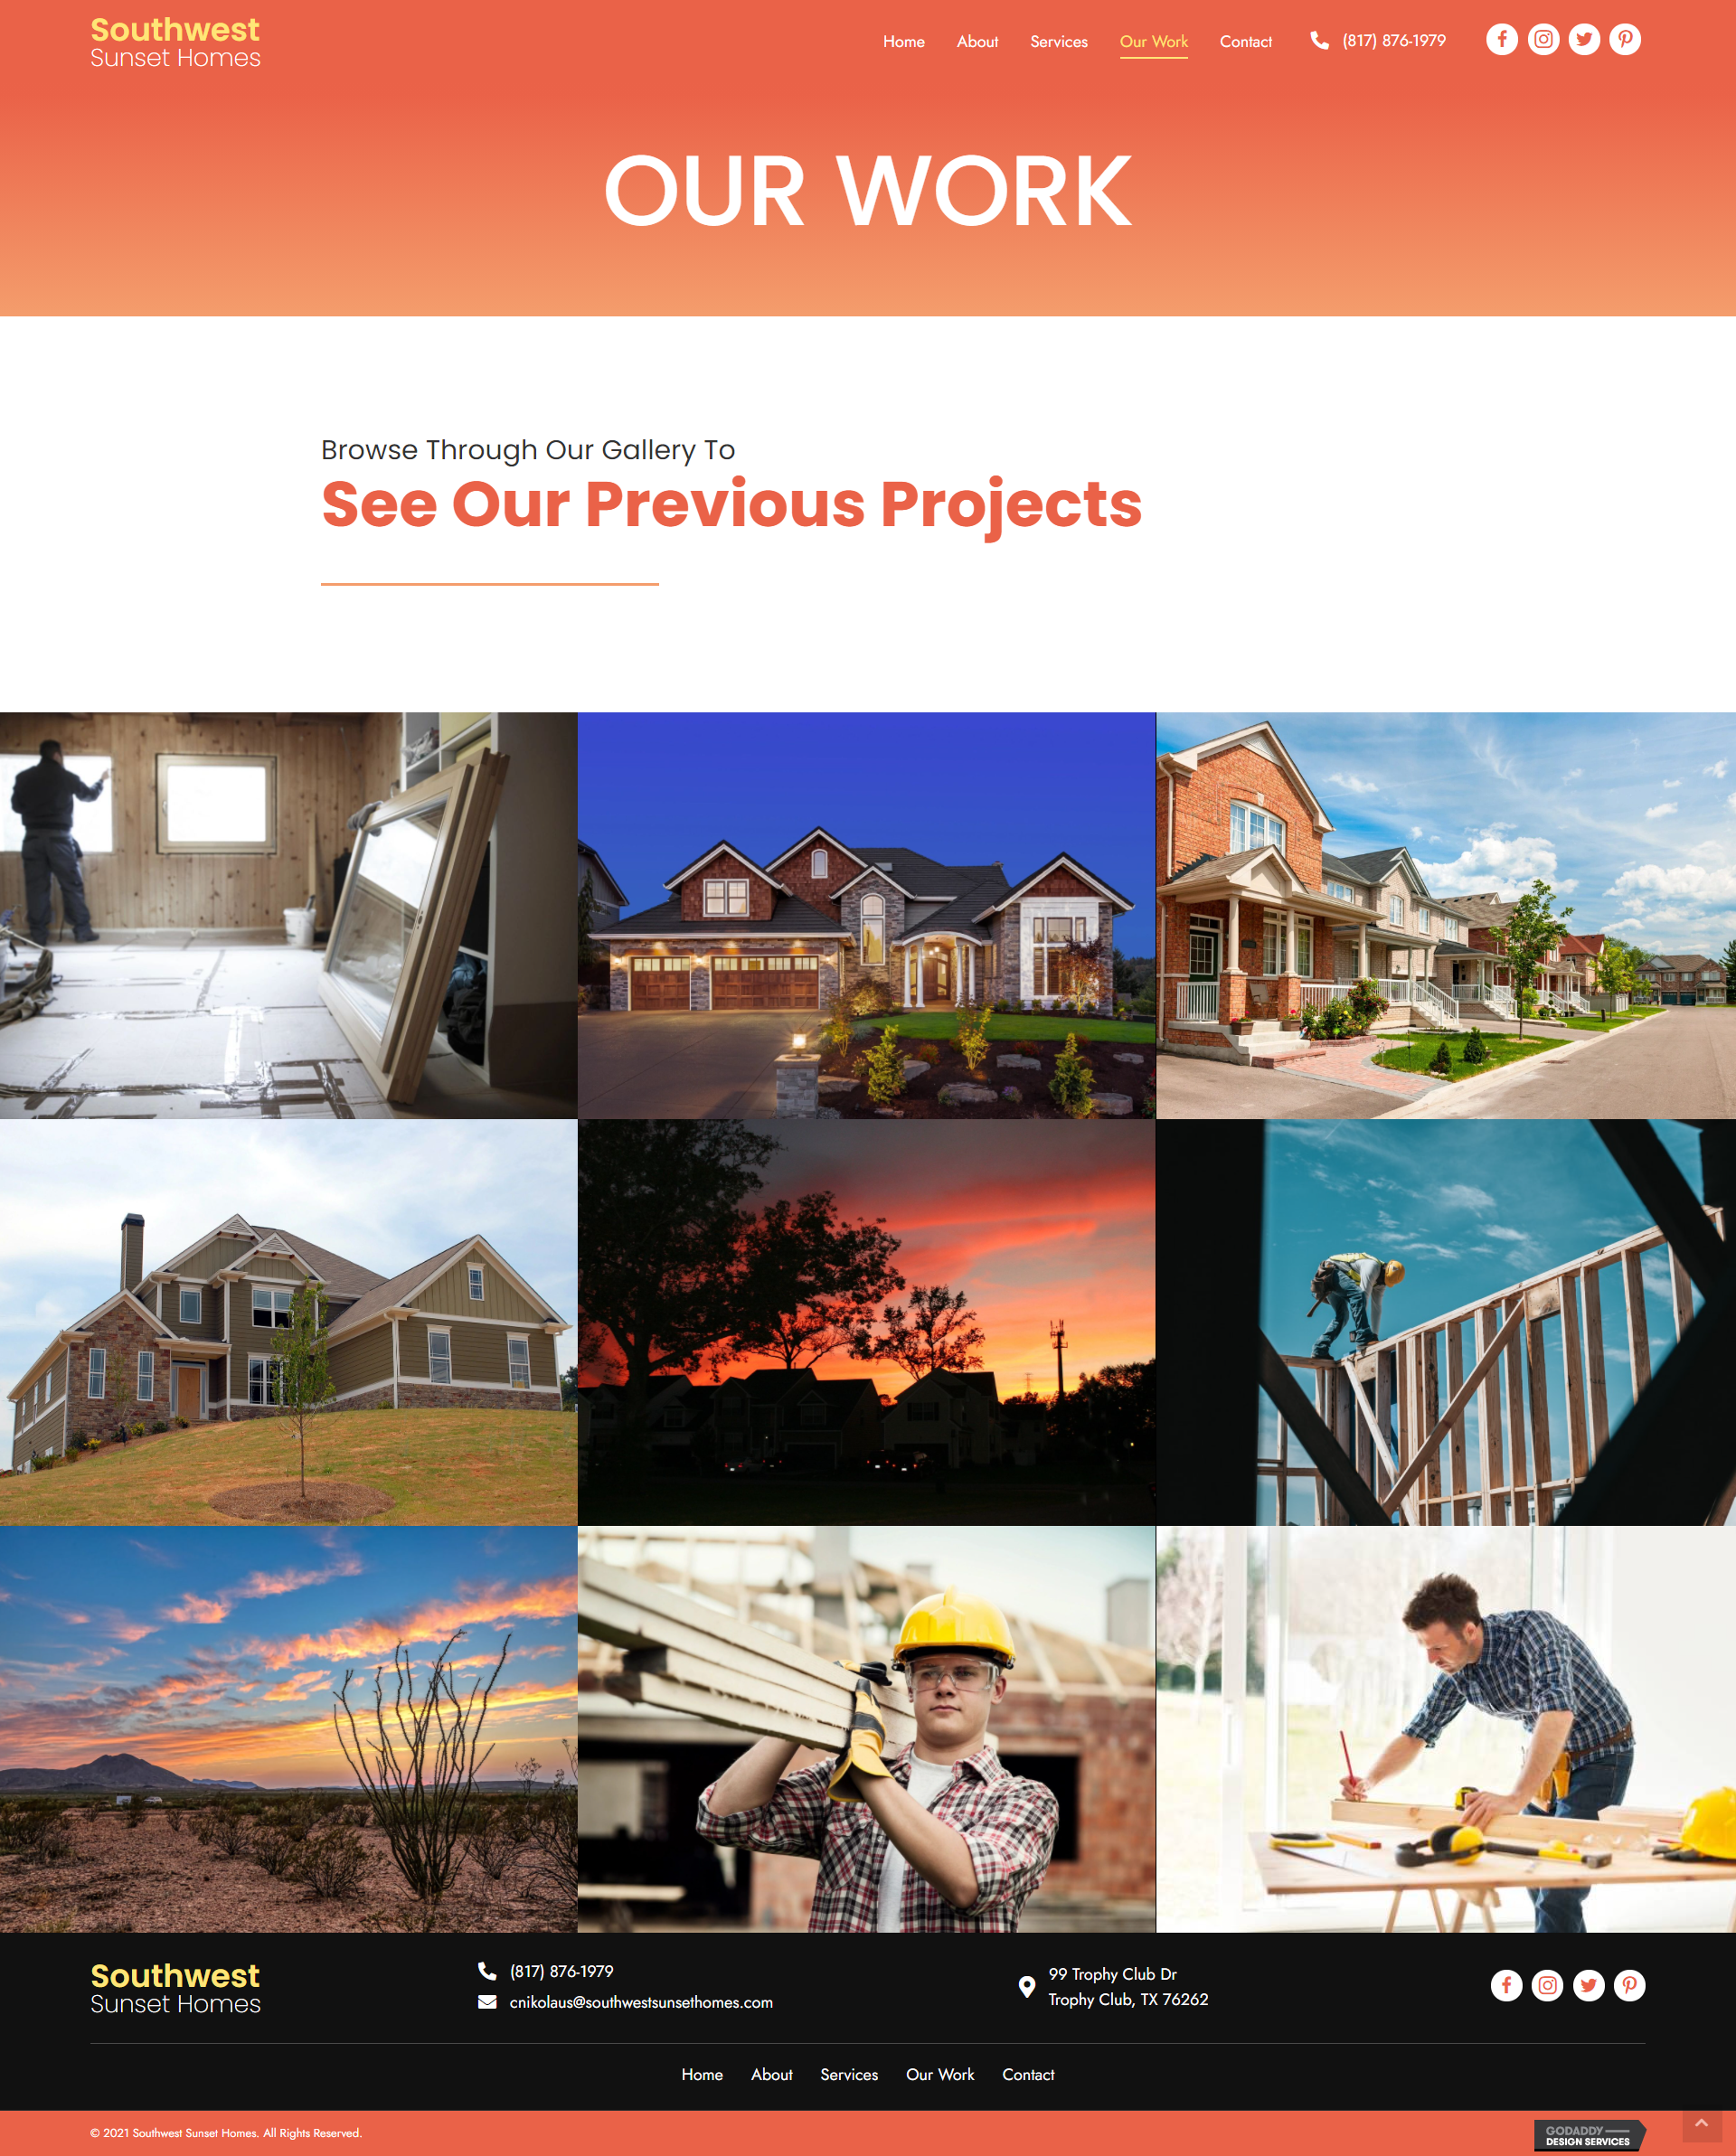 Southwest Sunset Homes Our Work